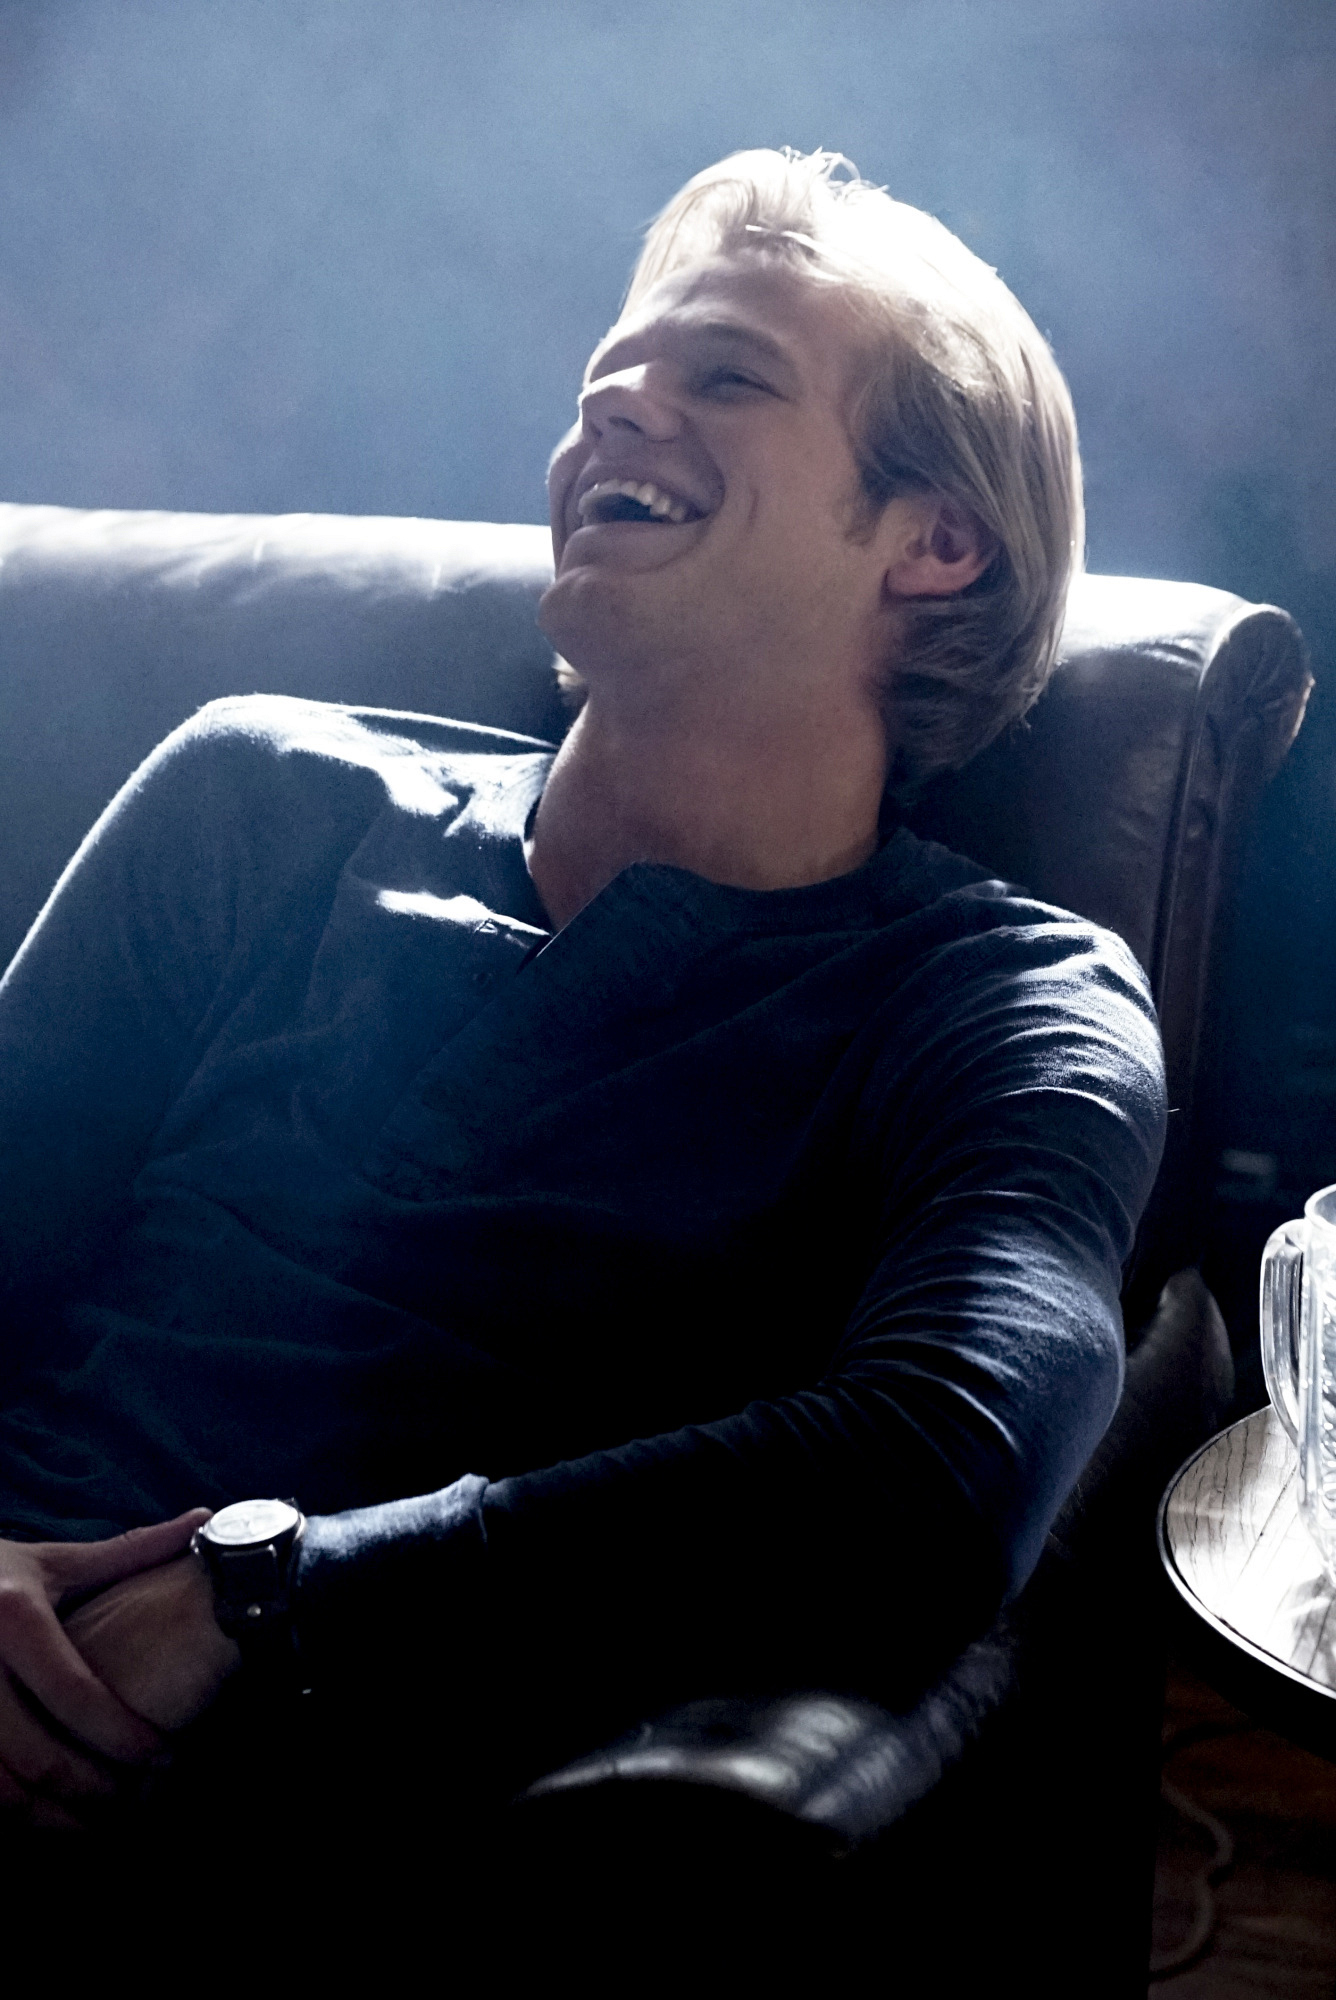 MacGyver kicks back and laughs.